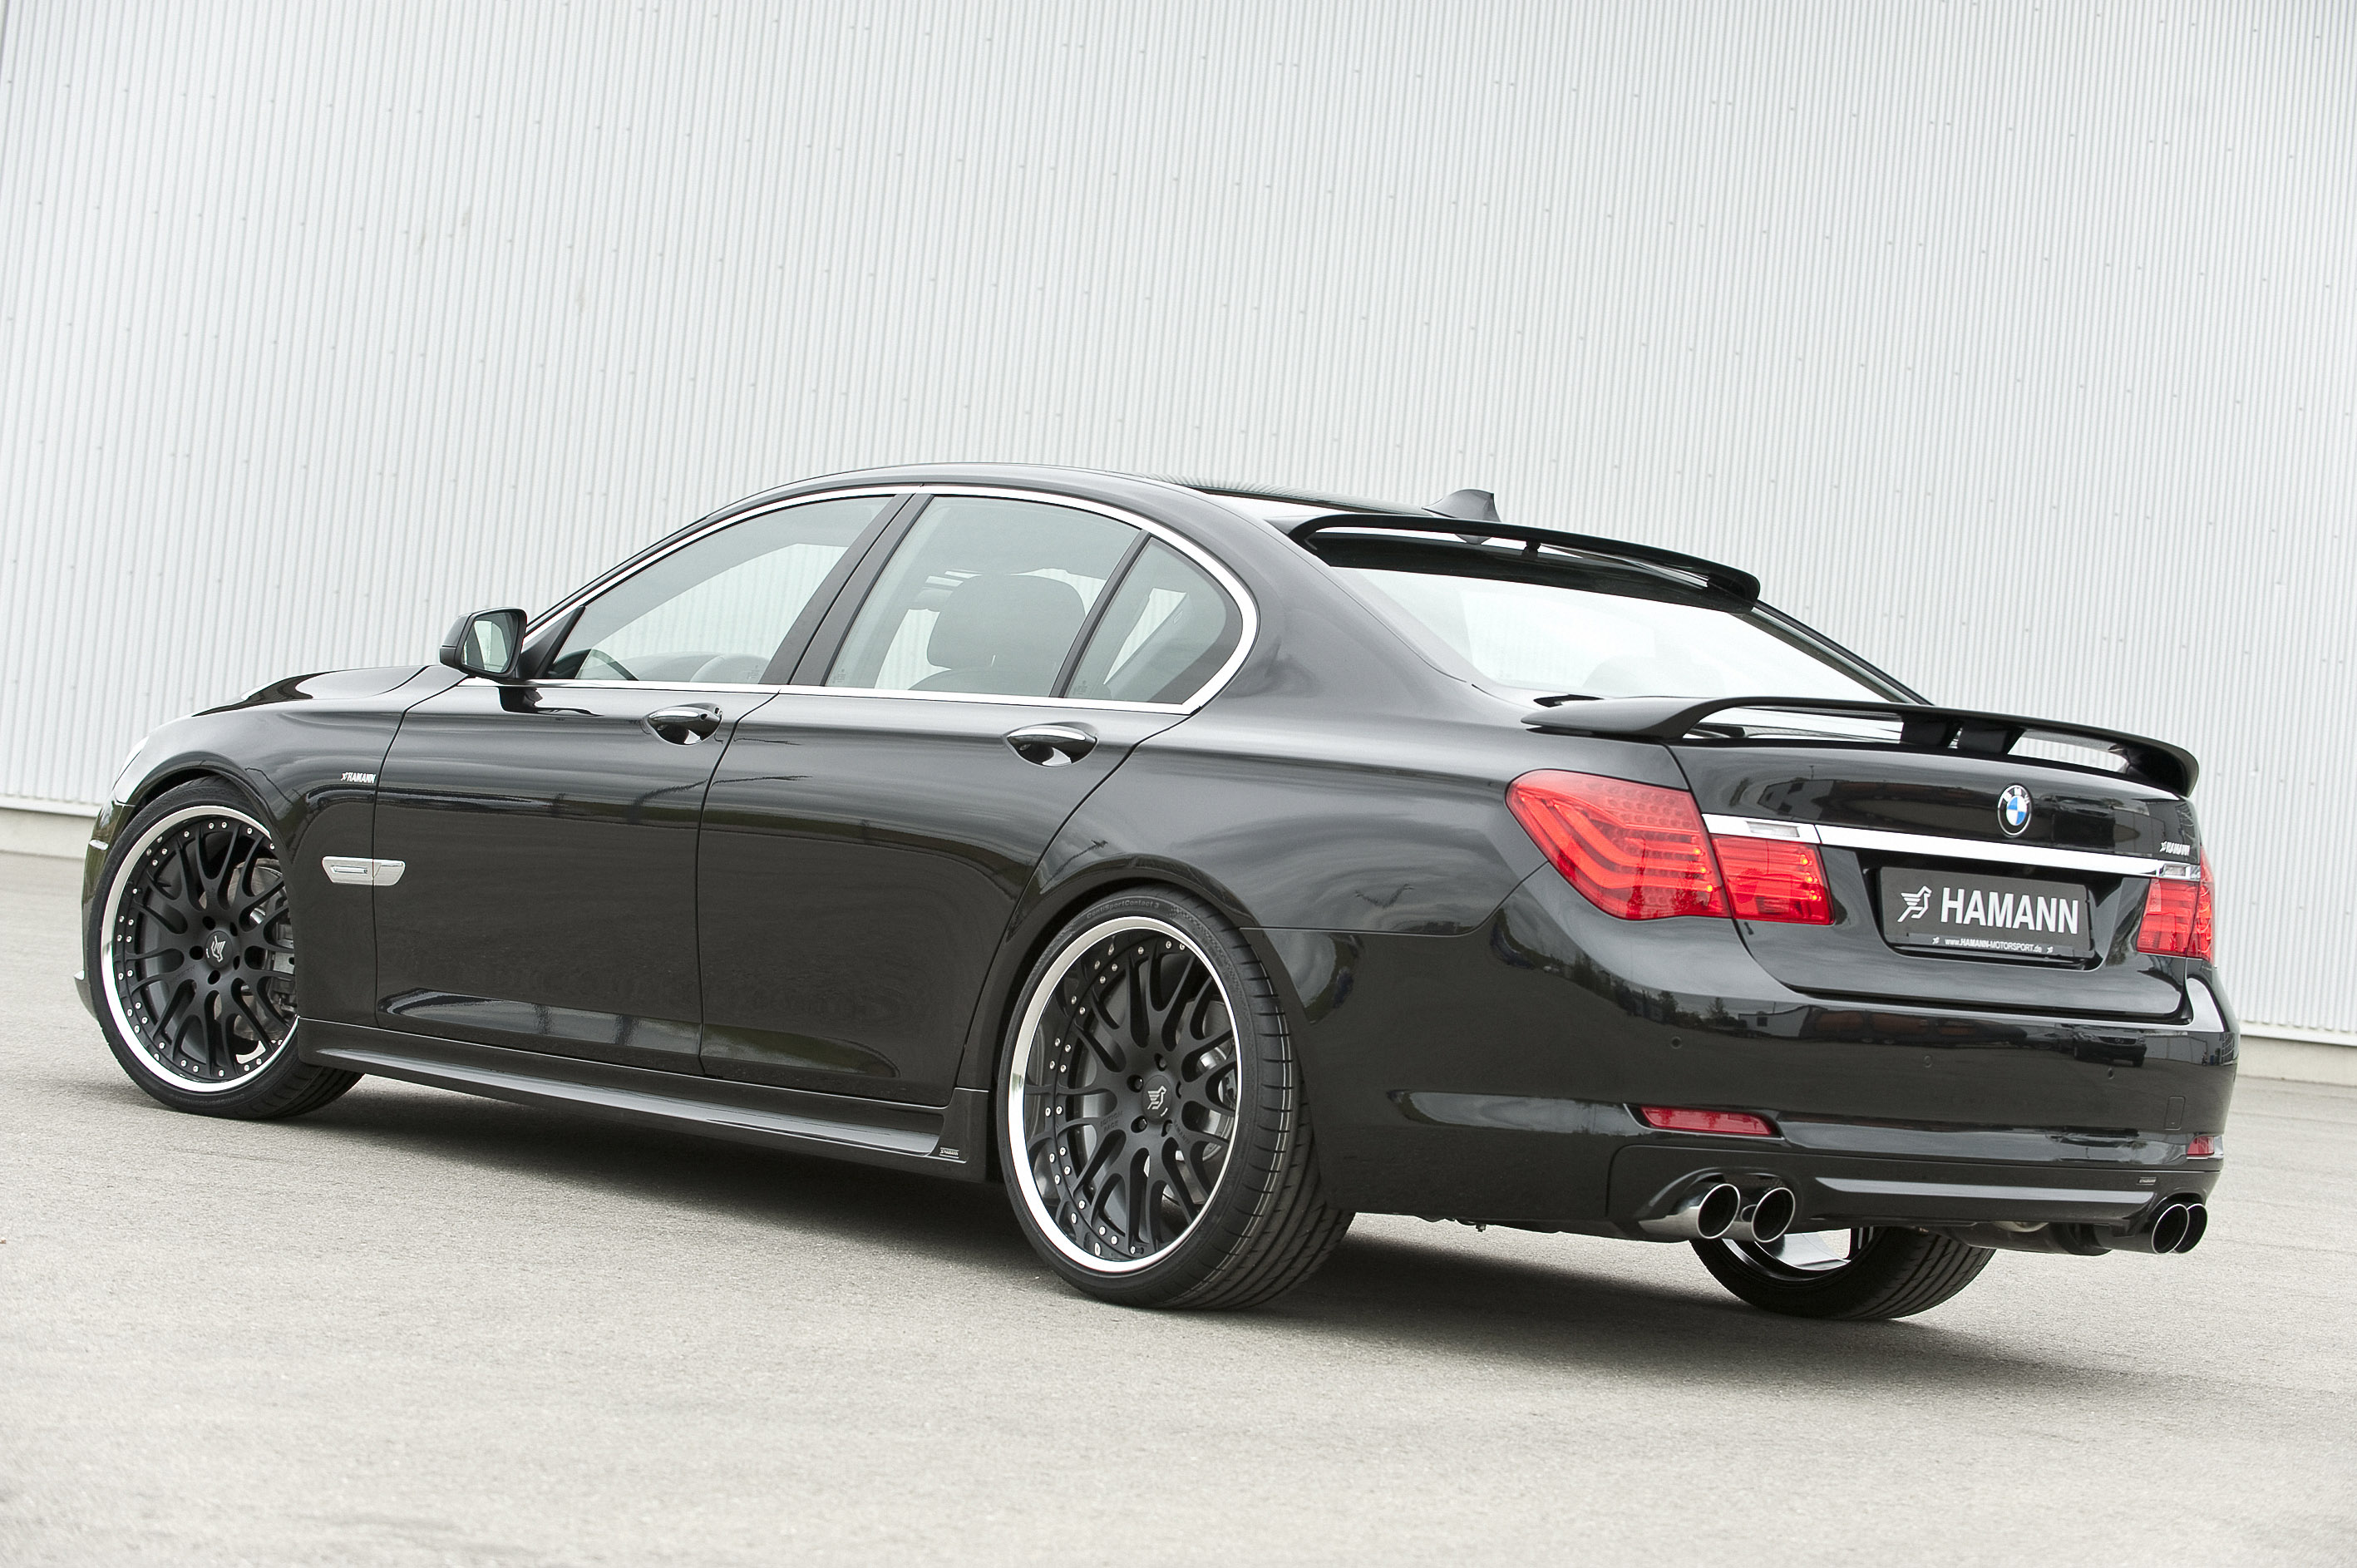 7 Serie Hamann Bmw 7 Series F01 F02 Picture 20458